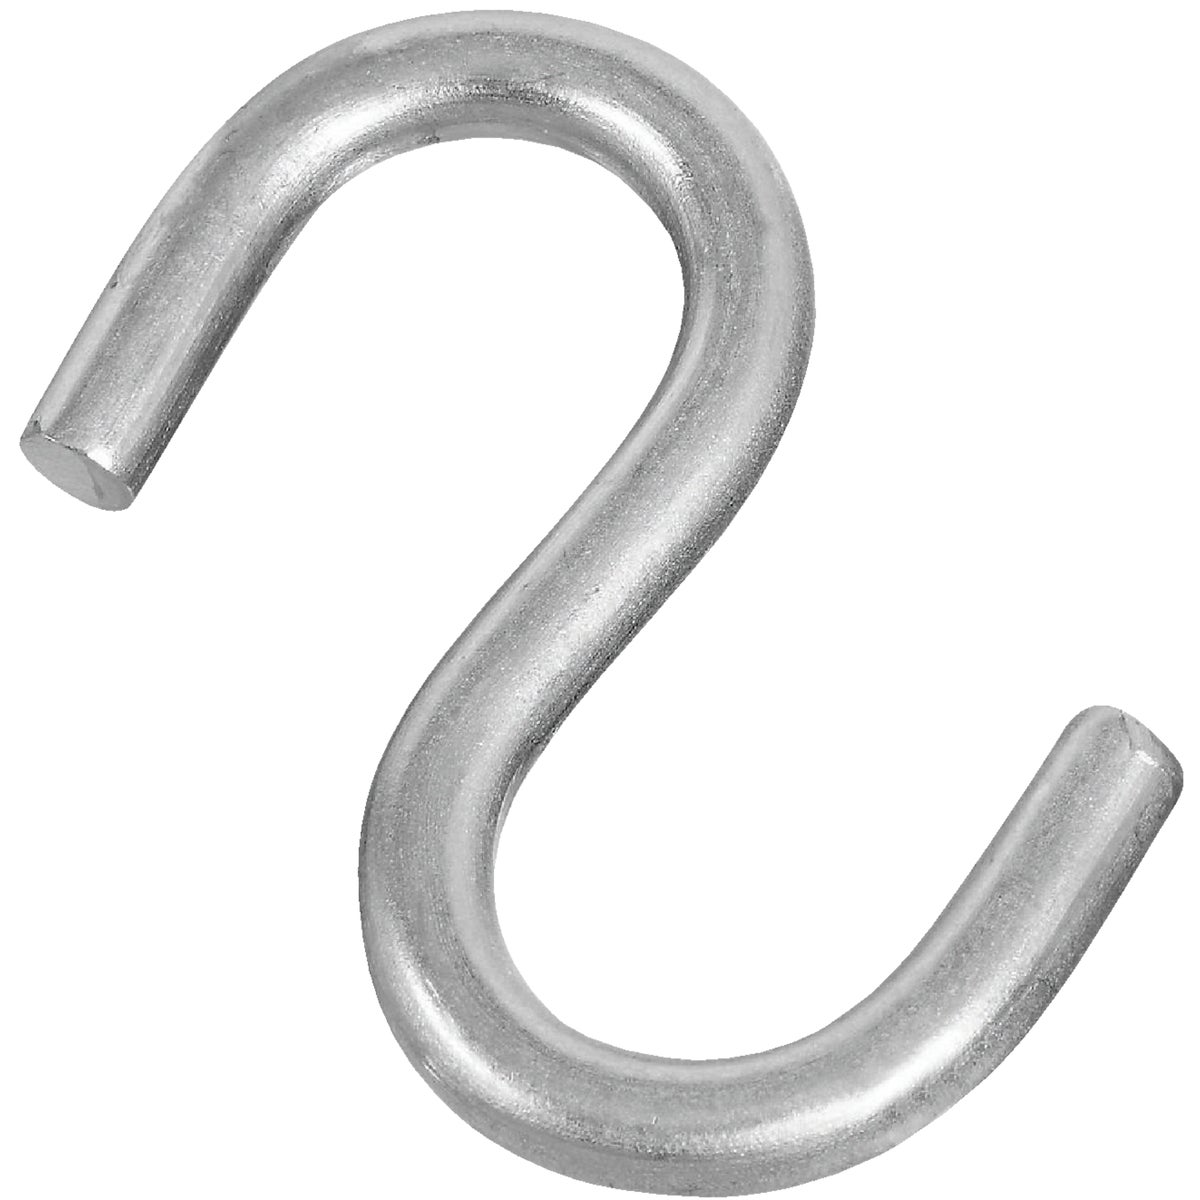 "3"" SS HEAVY S HOOK - N233569 by National Mfg Co"